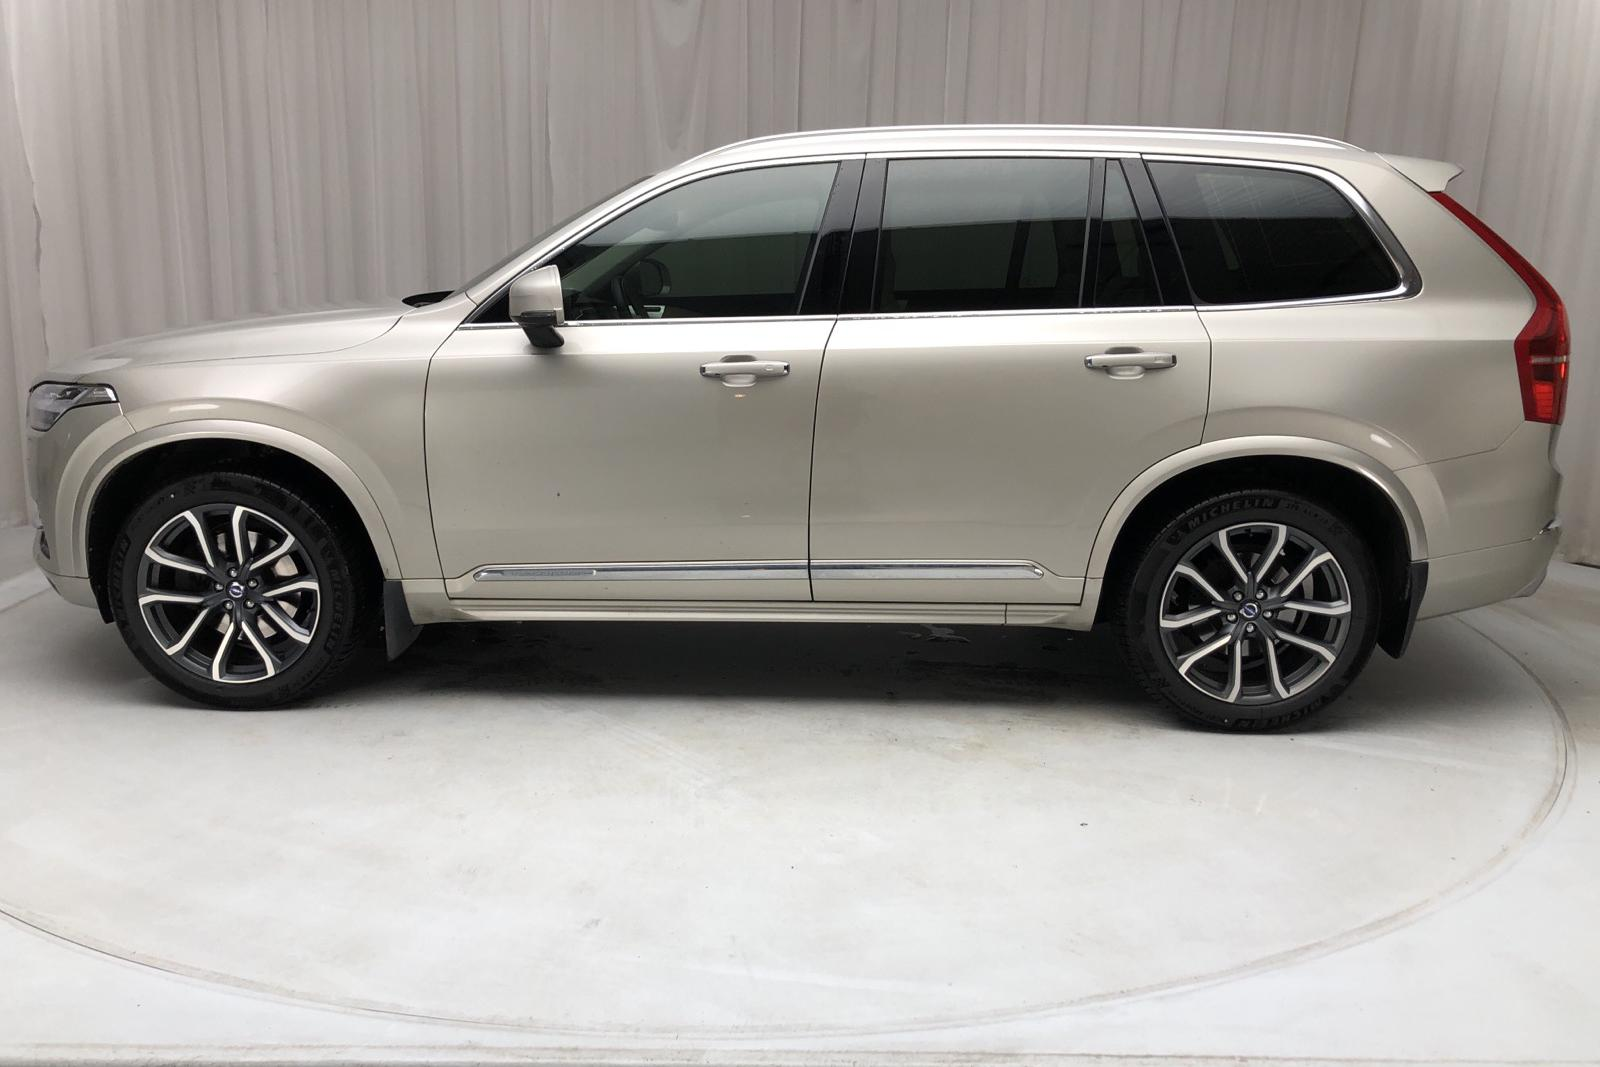 Volvo XC90 D5 AWD (235hk) - 84 810 km - Automatic - Light Brown - 2018